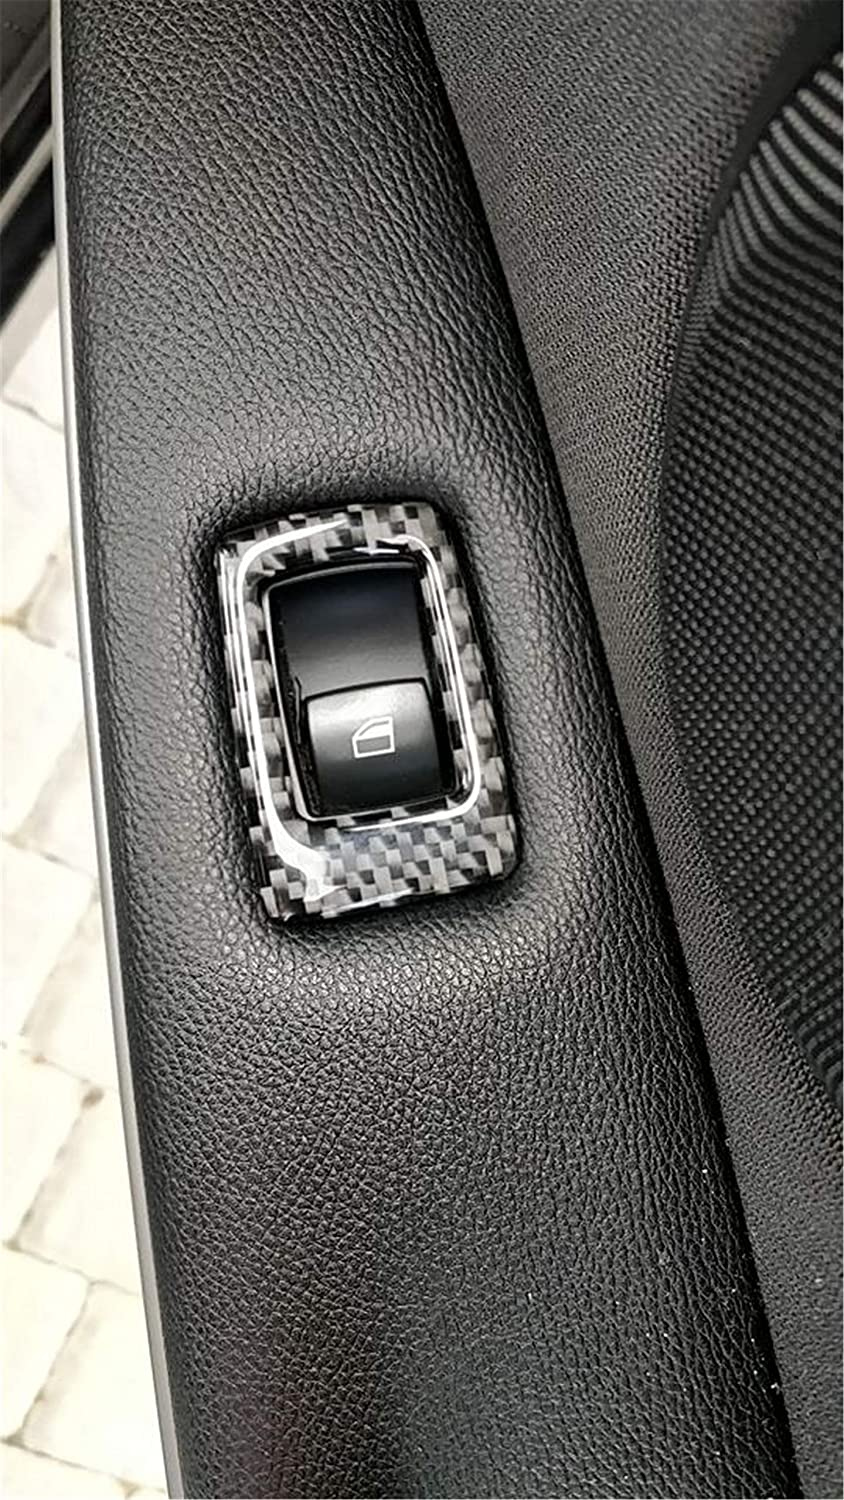 35.8cm with Mirror Hold Button Carbon Fiber Armrest Door Handle Window Lift Switch Button Panel Frame Decal Cover Trim for BMW 3 Series 5th E90 E91 E92 E93 315 318 320 323 325 328 2005-2013 9CC